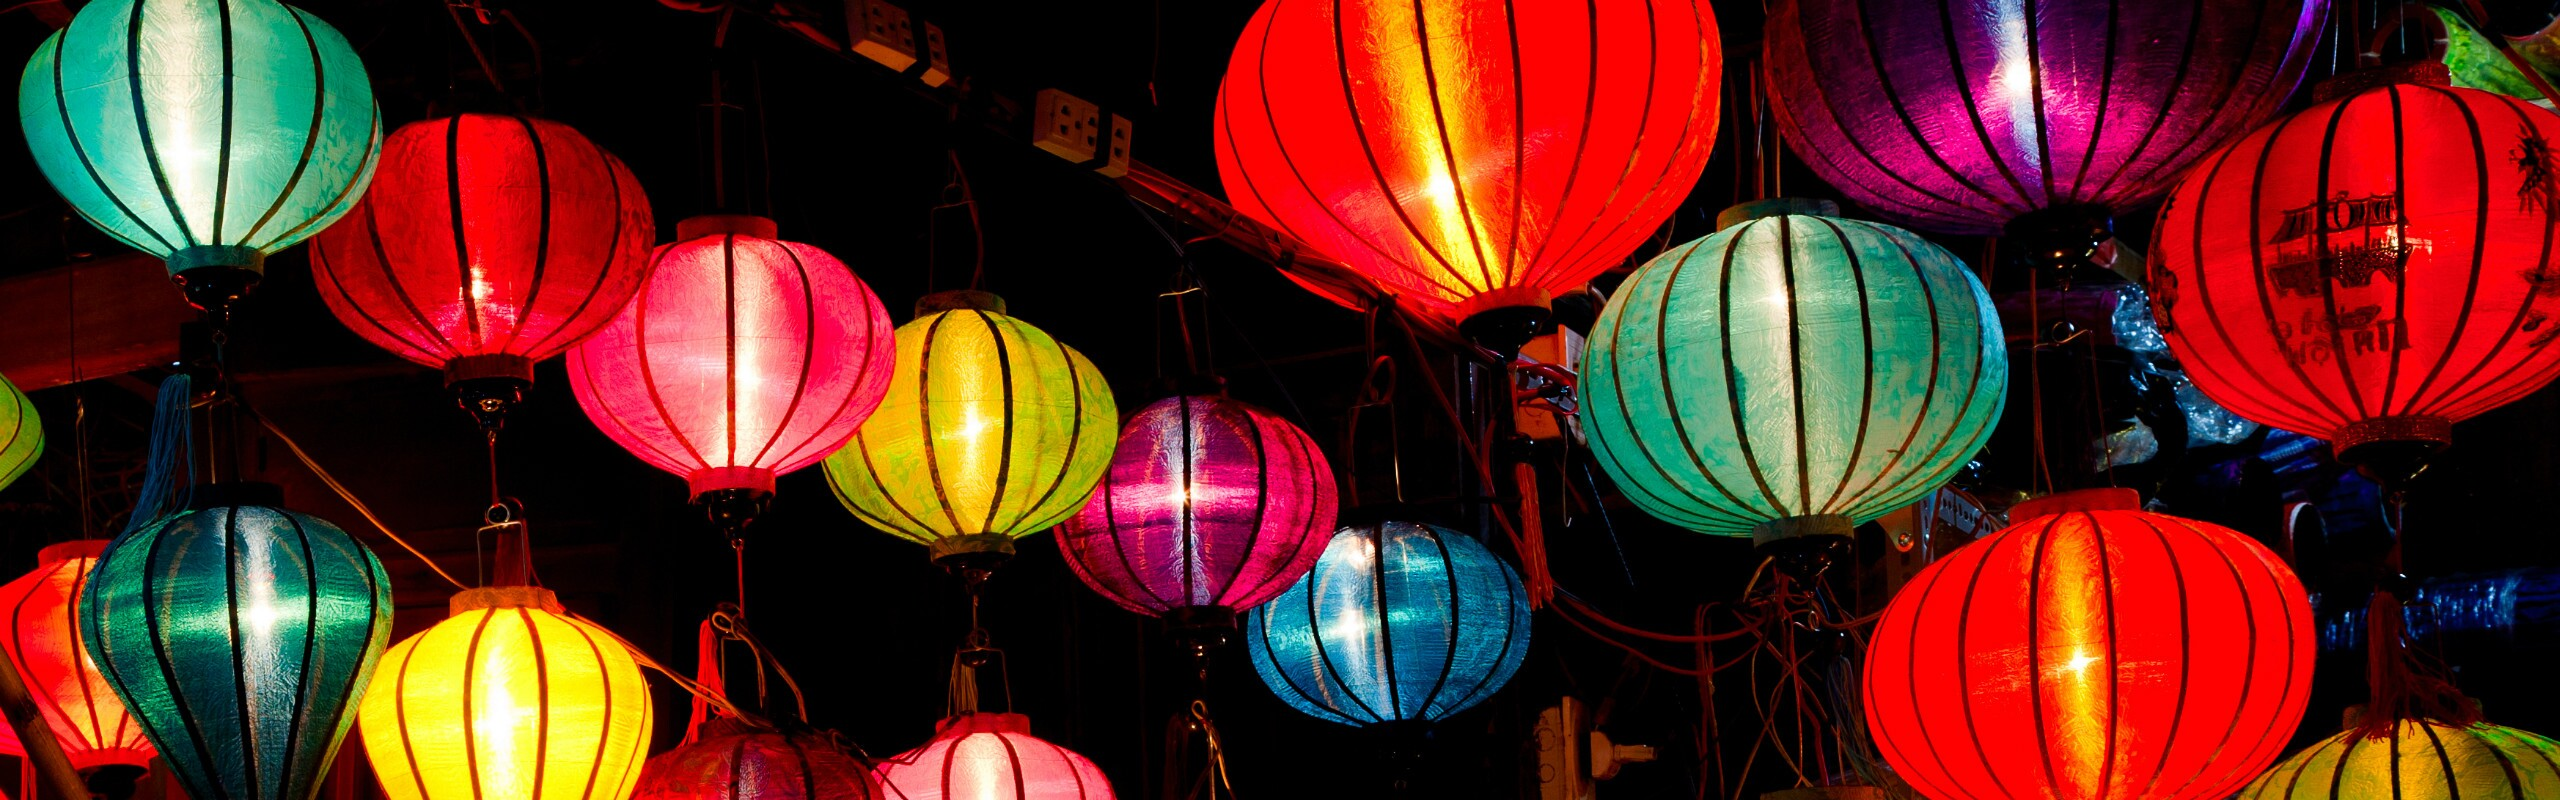 Vietnamese Lunar New Year 2021 (Tet) - 7 Things You Need to Know